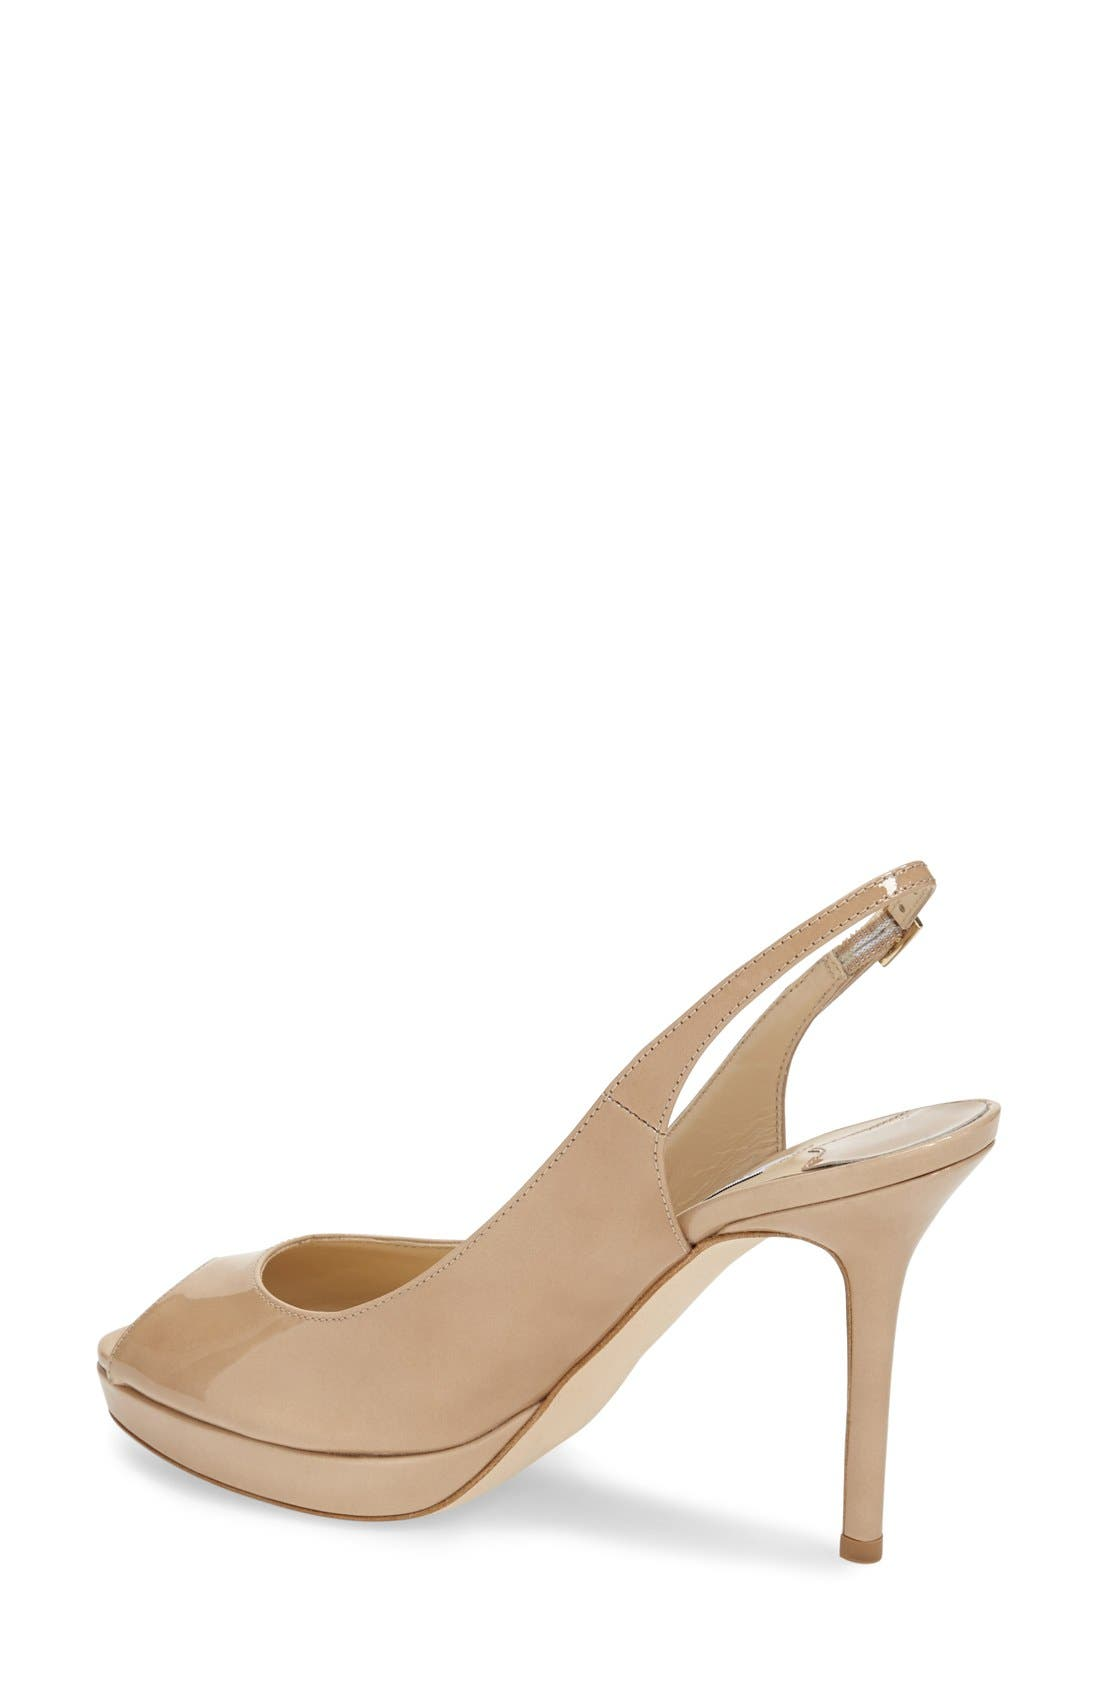 Alternate Image 2  - Jimmy Choo 'Nova' Patent Leather Slingback Pump (Women)